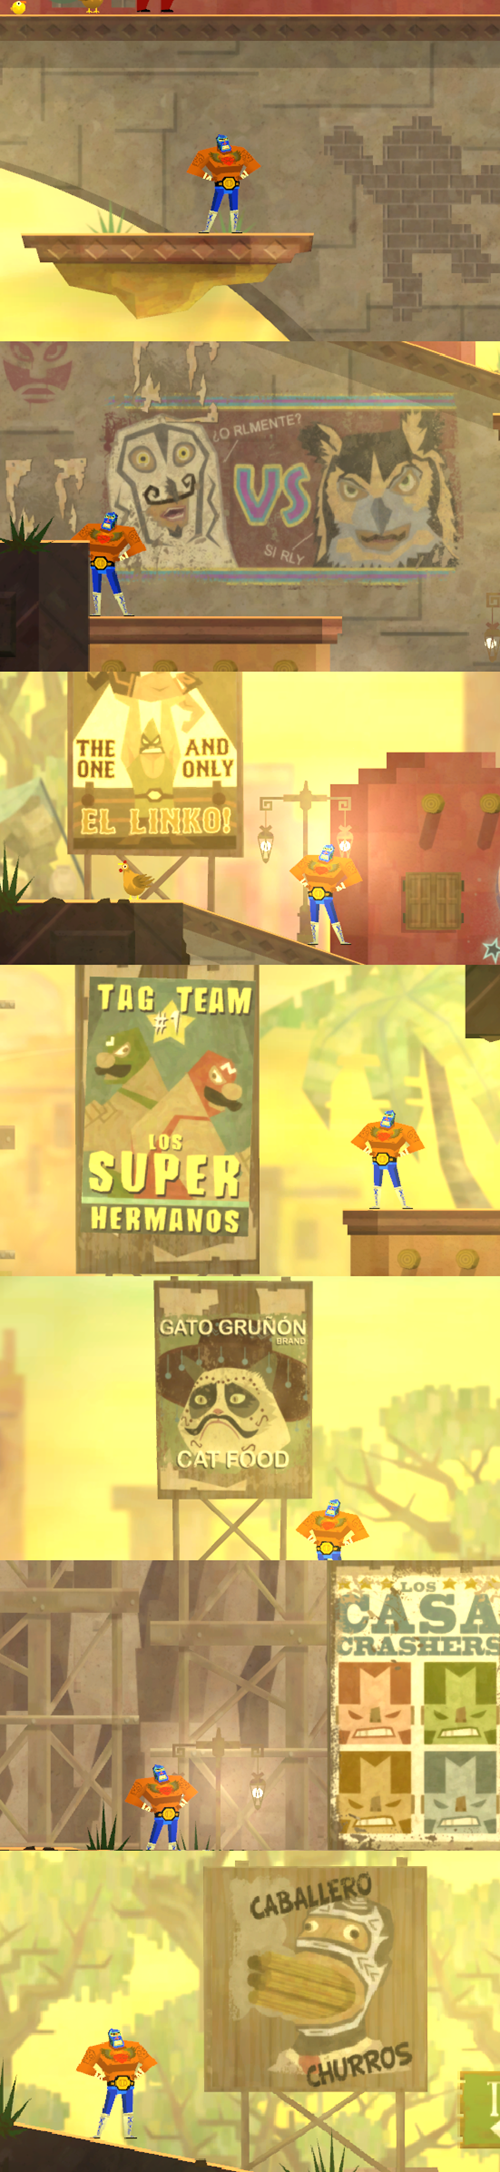 Guacamelee - This Game Puts a Smile on My Face!